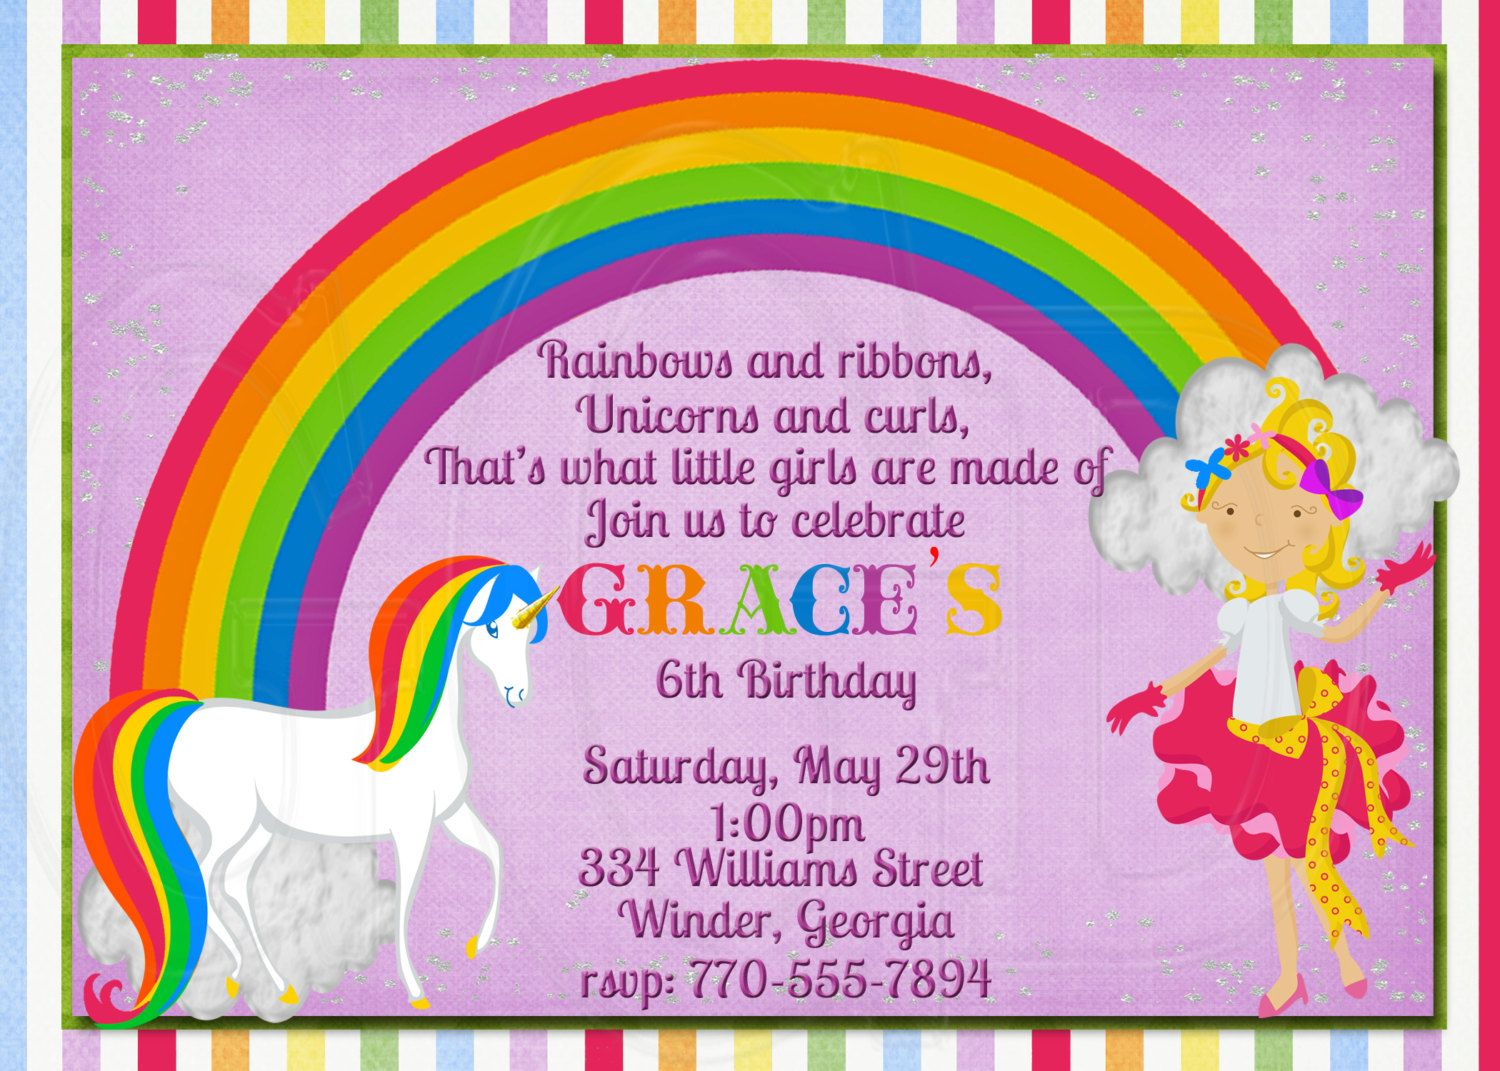 rainbow birthday invitations - Google Search